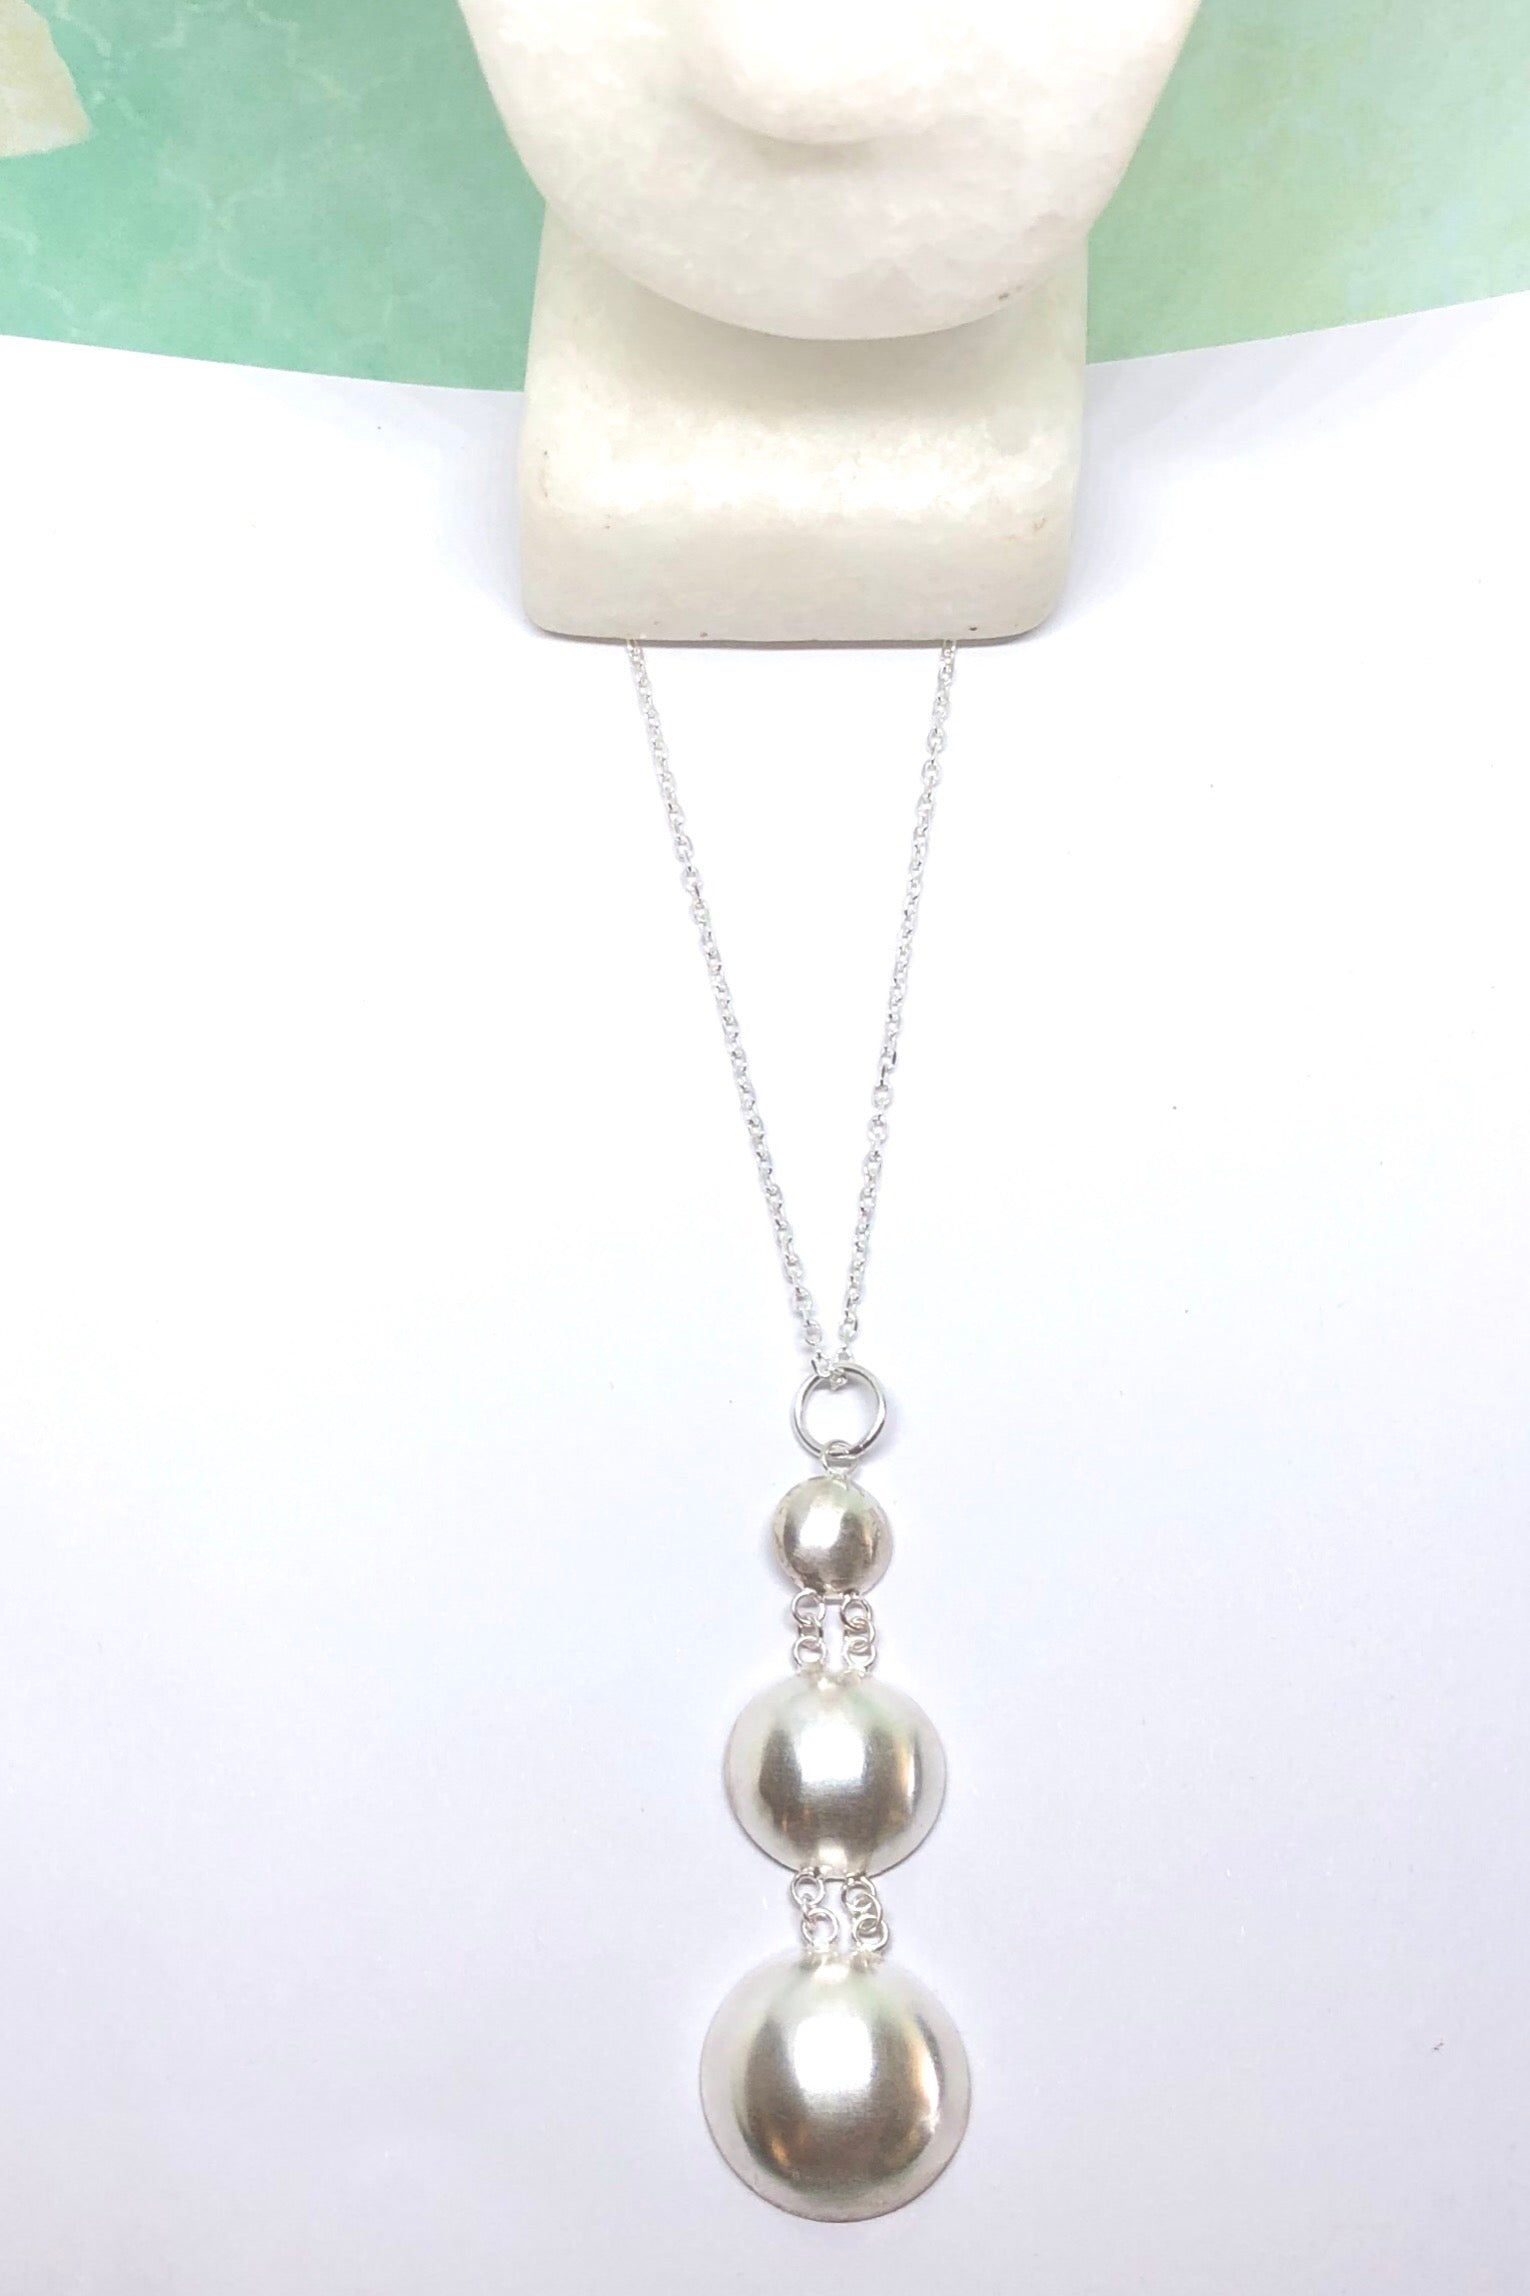 Silver pendant designed in African chic modern style.